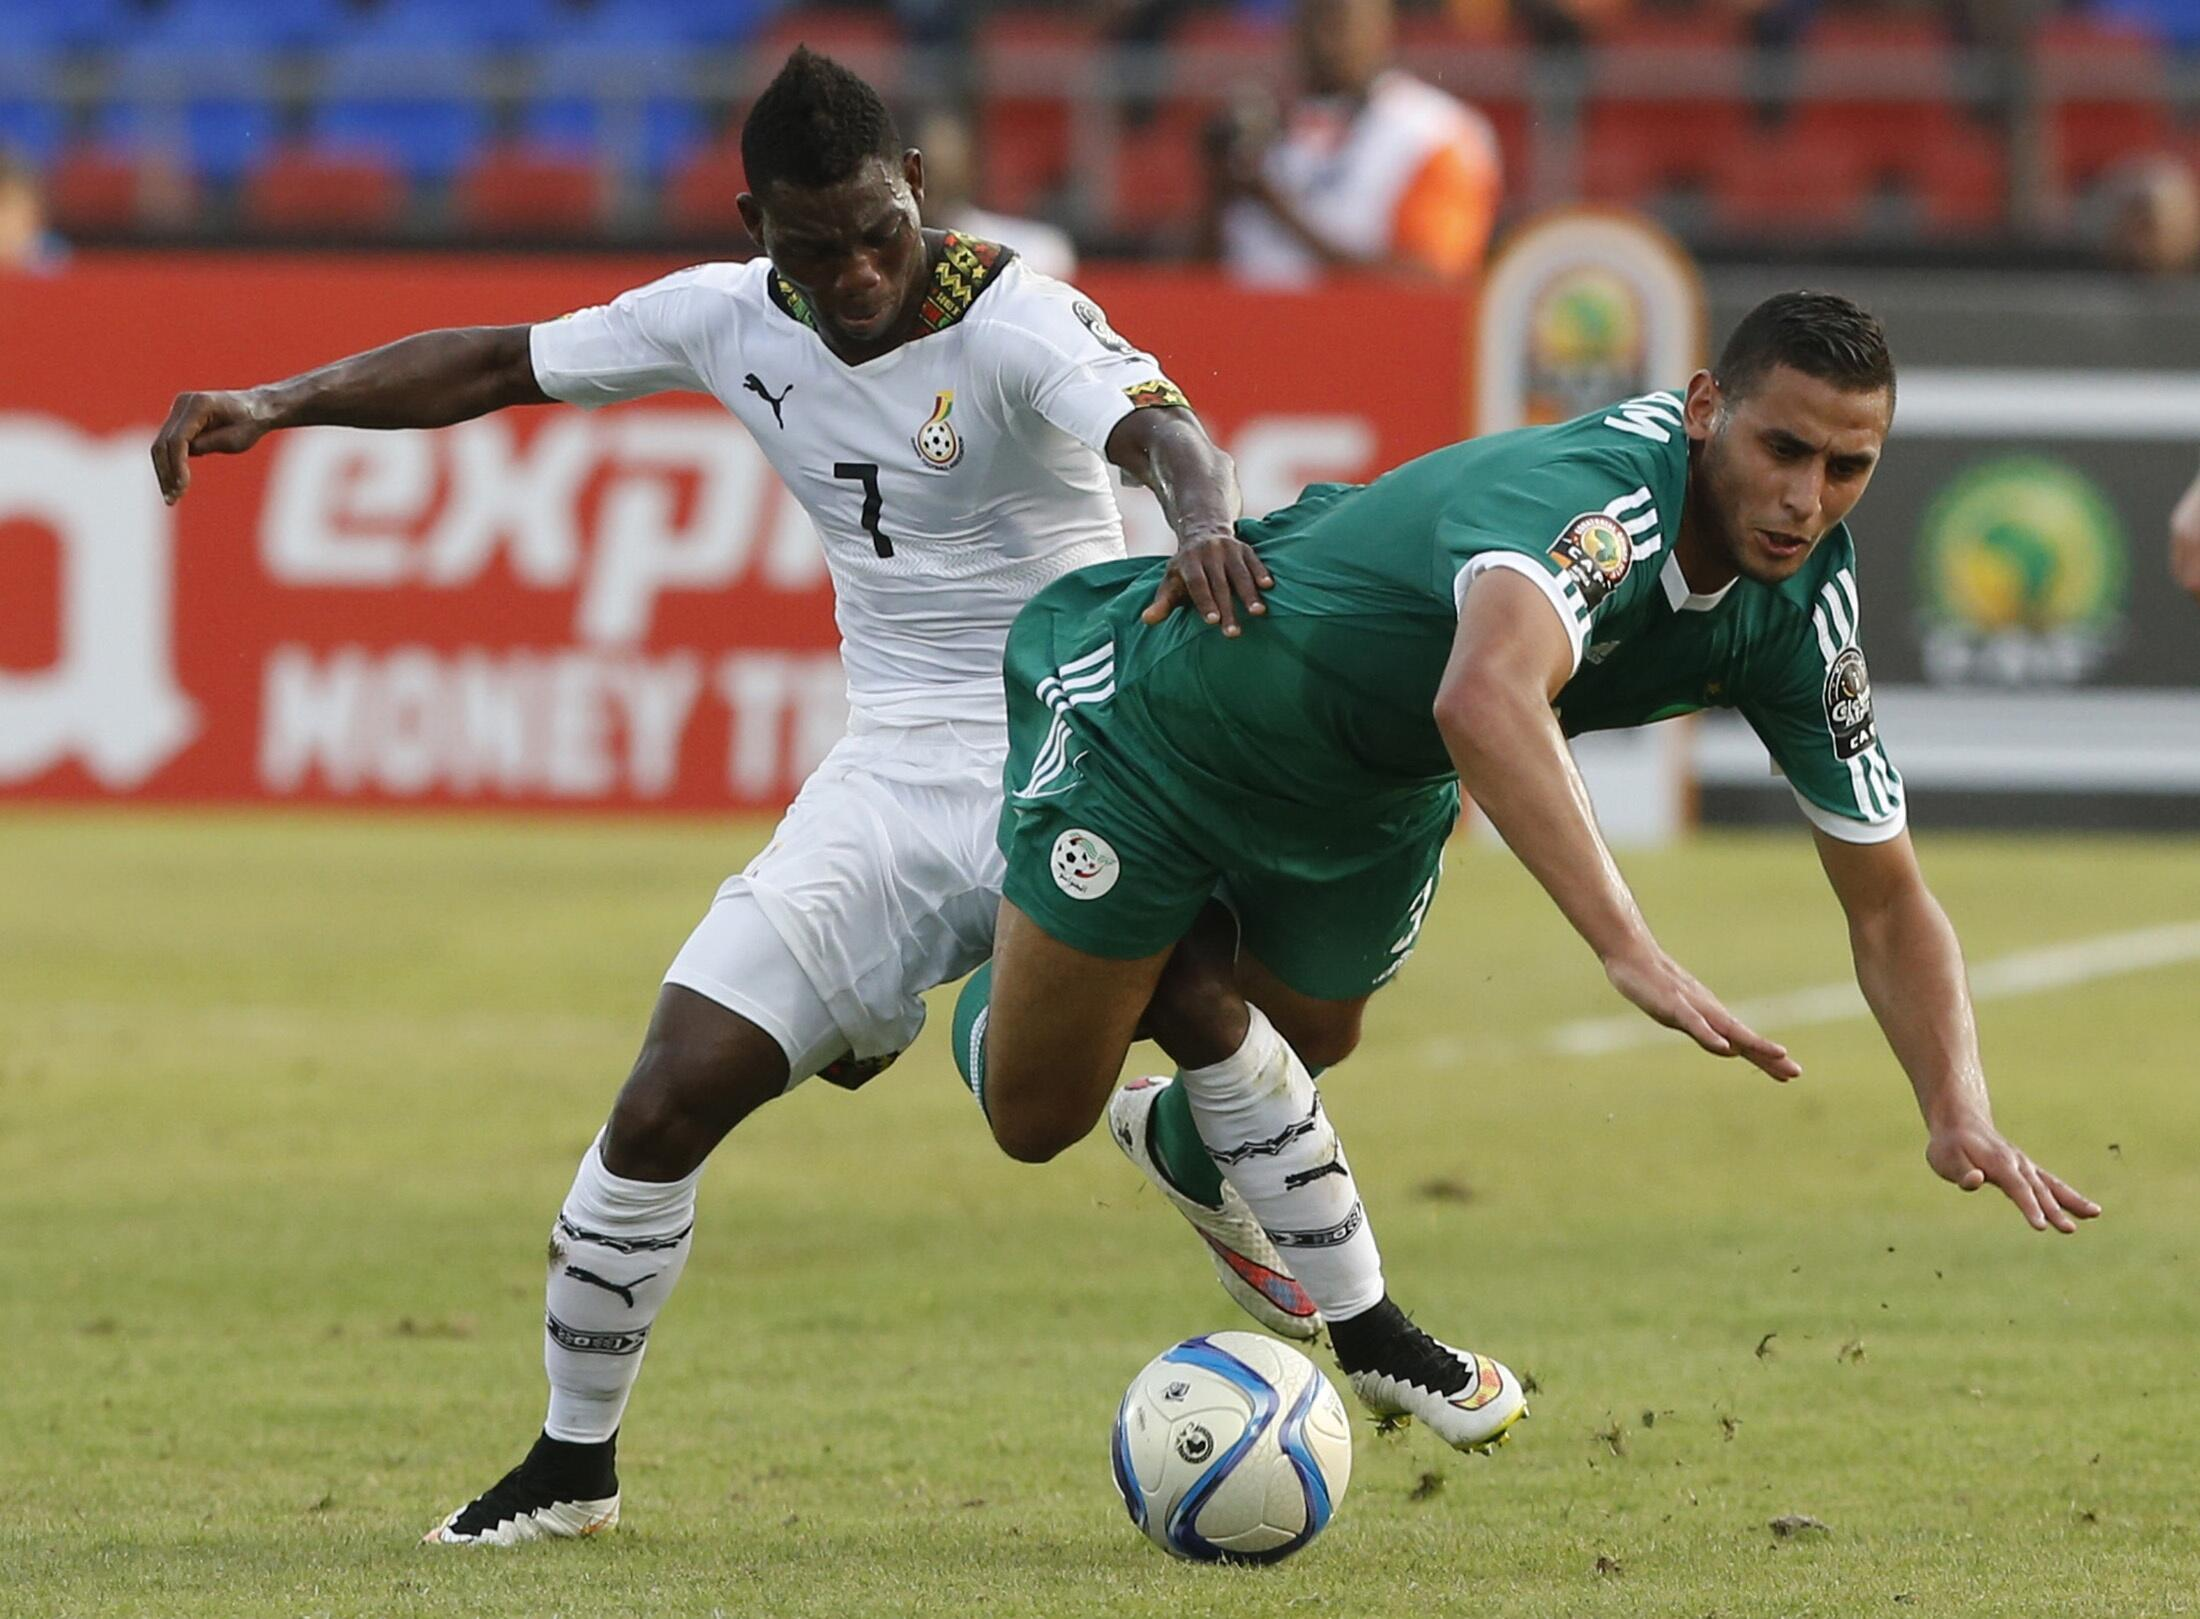 Ghana's Christian Atsu challenges Algeria's Faouzi Ghoulam during their match in Mongomo on 23 January, 2015